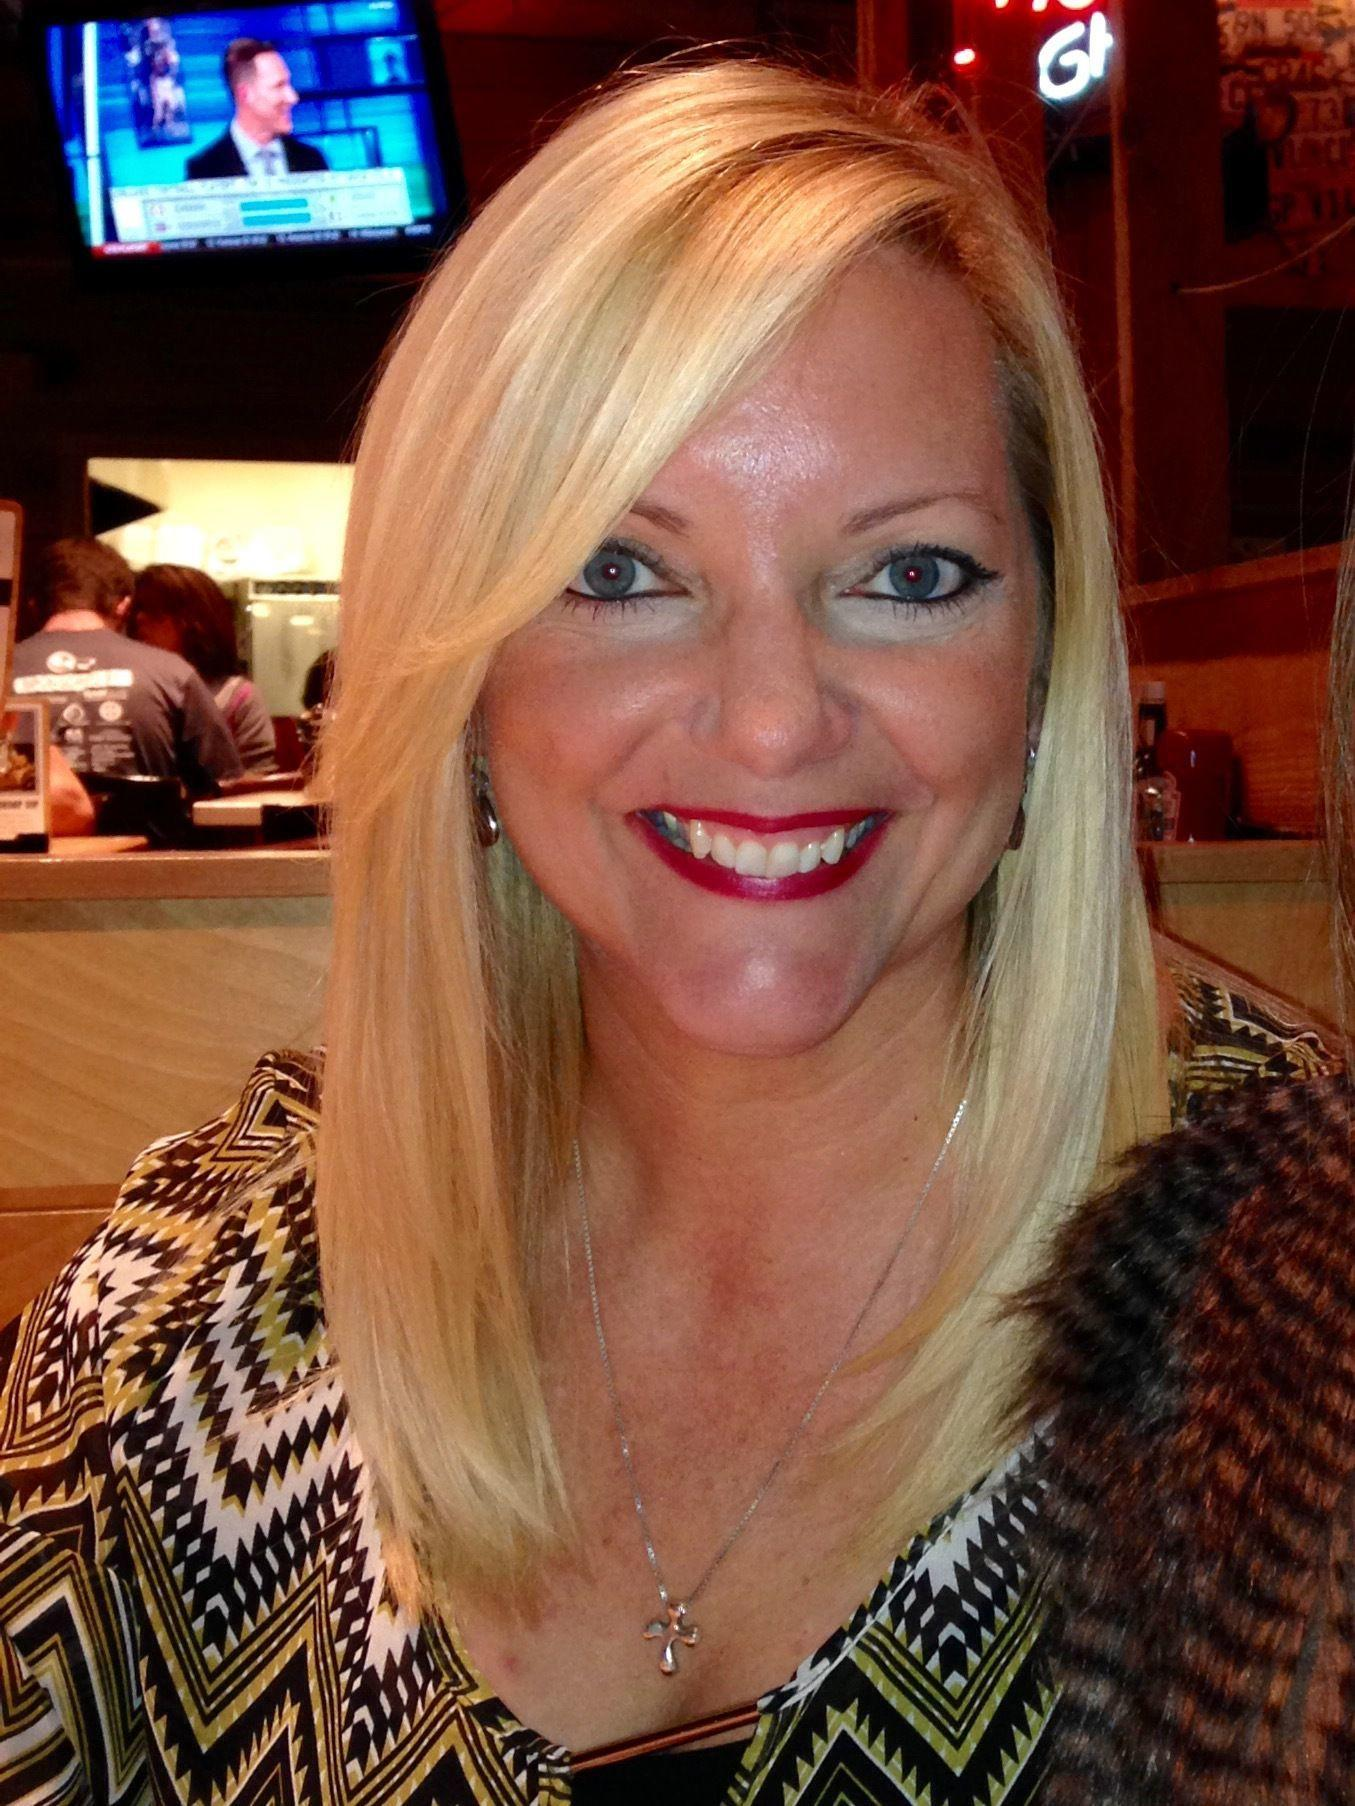 nashville dating over 40 Feature, but our intelligent matchmaking streamlines the nashville dating  experience  find a great match: learn about christian dating, dating for the over  30s,.